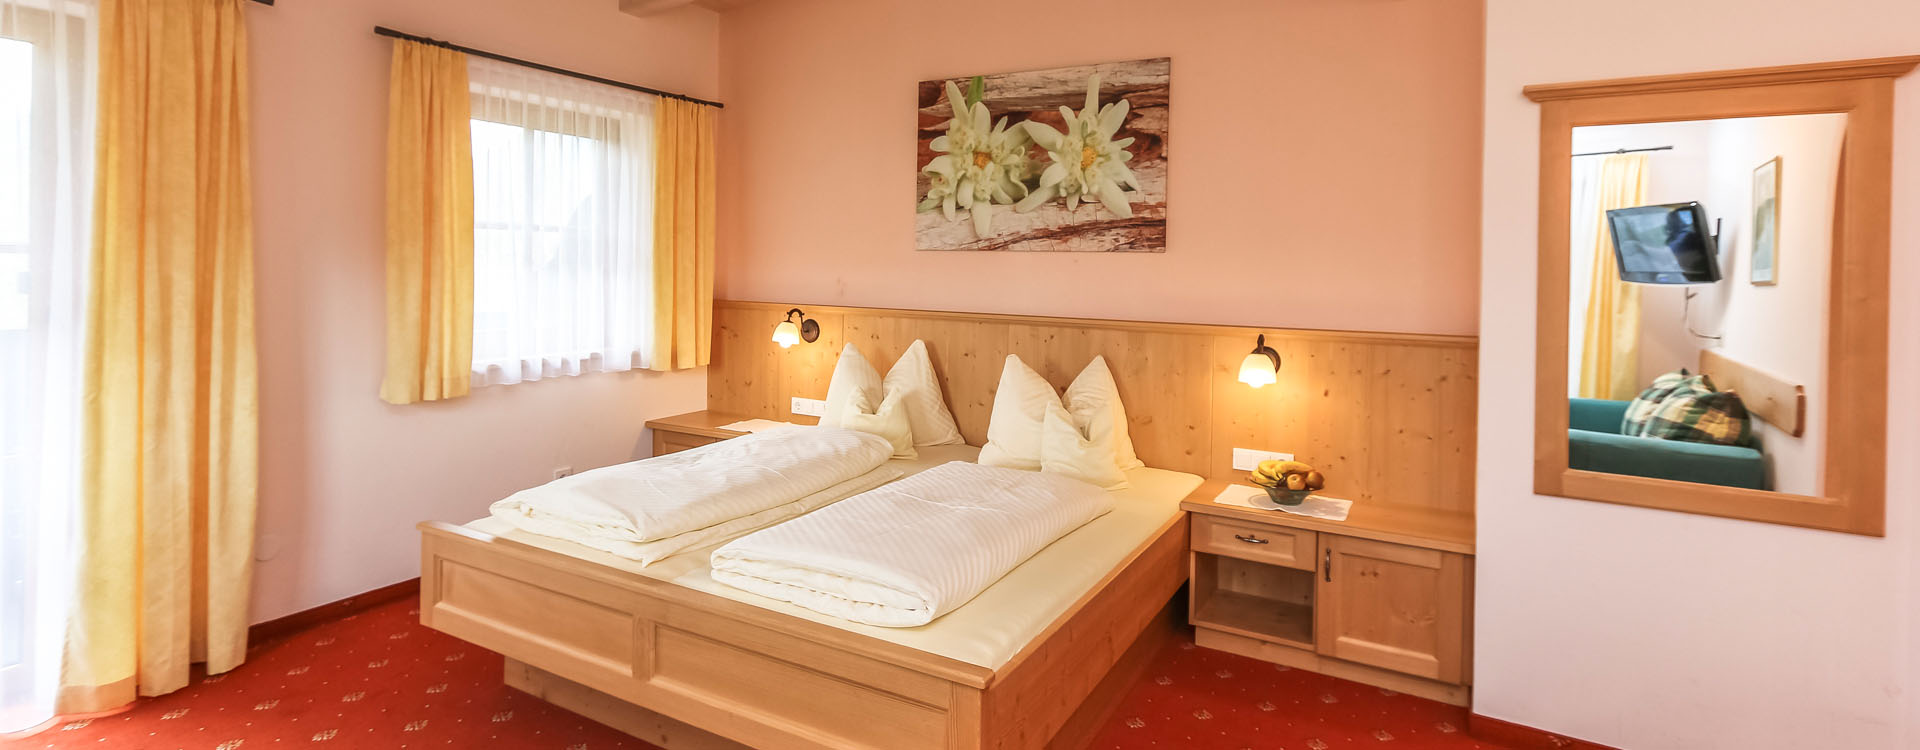 Hotel Pension Lofer Zimmer